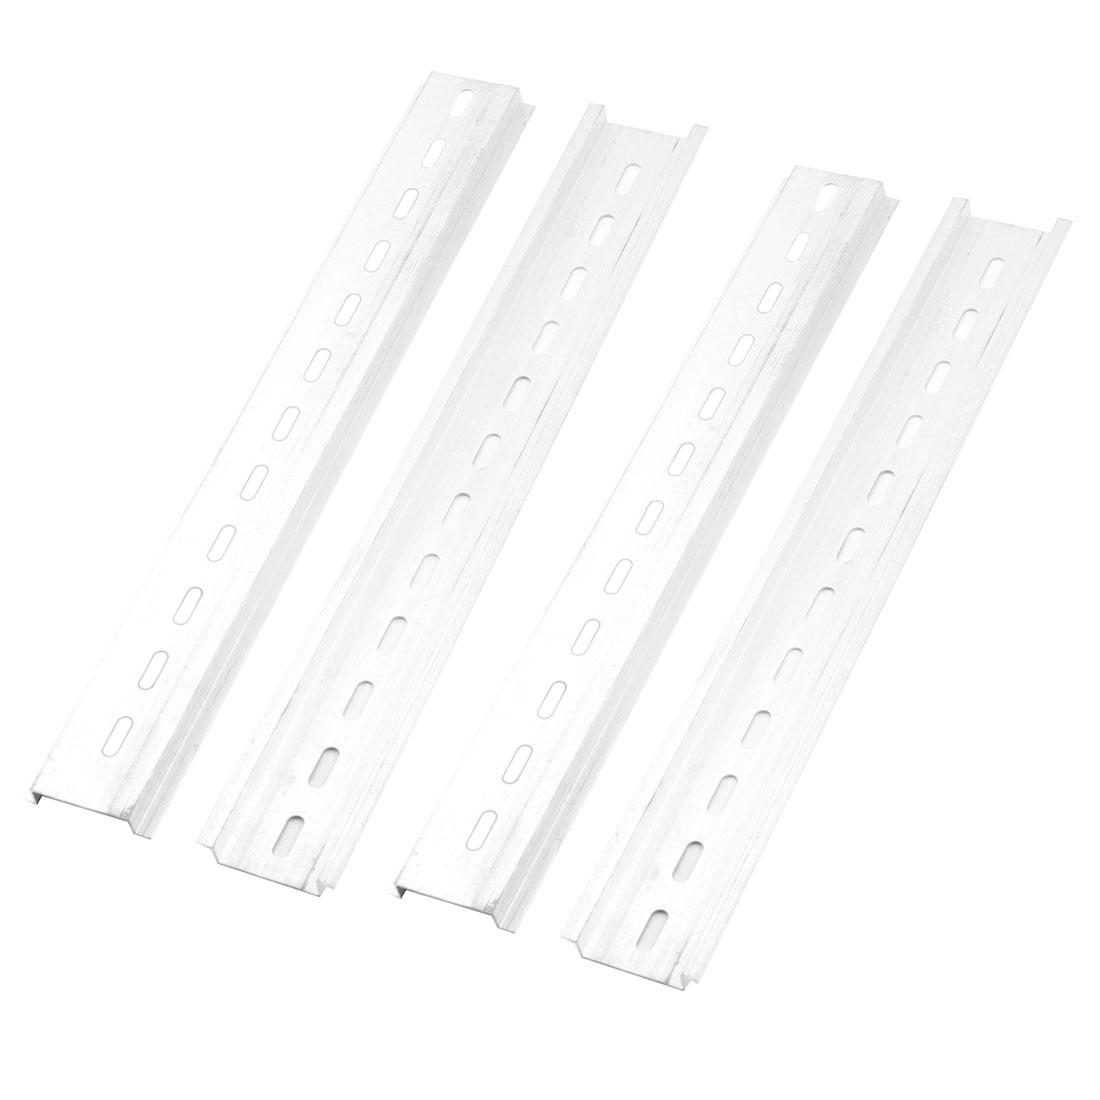 4 Pcs 35mm Width Slotted Design Aluminum DIN Rail 250mm